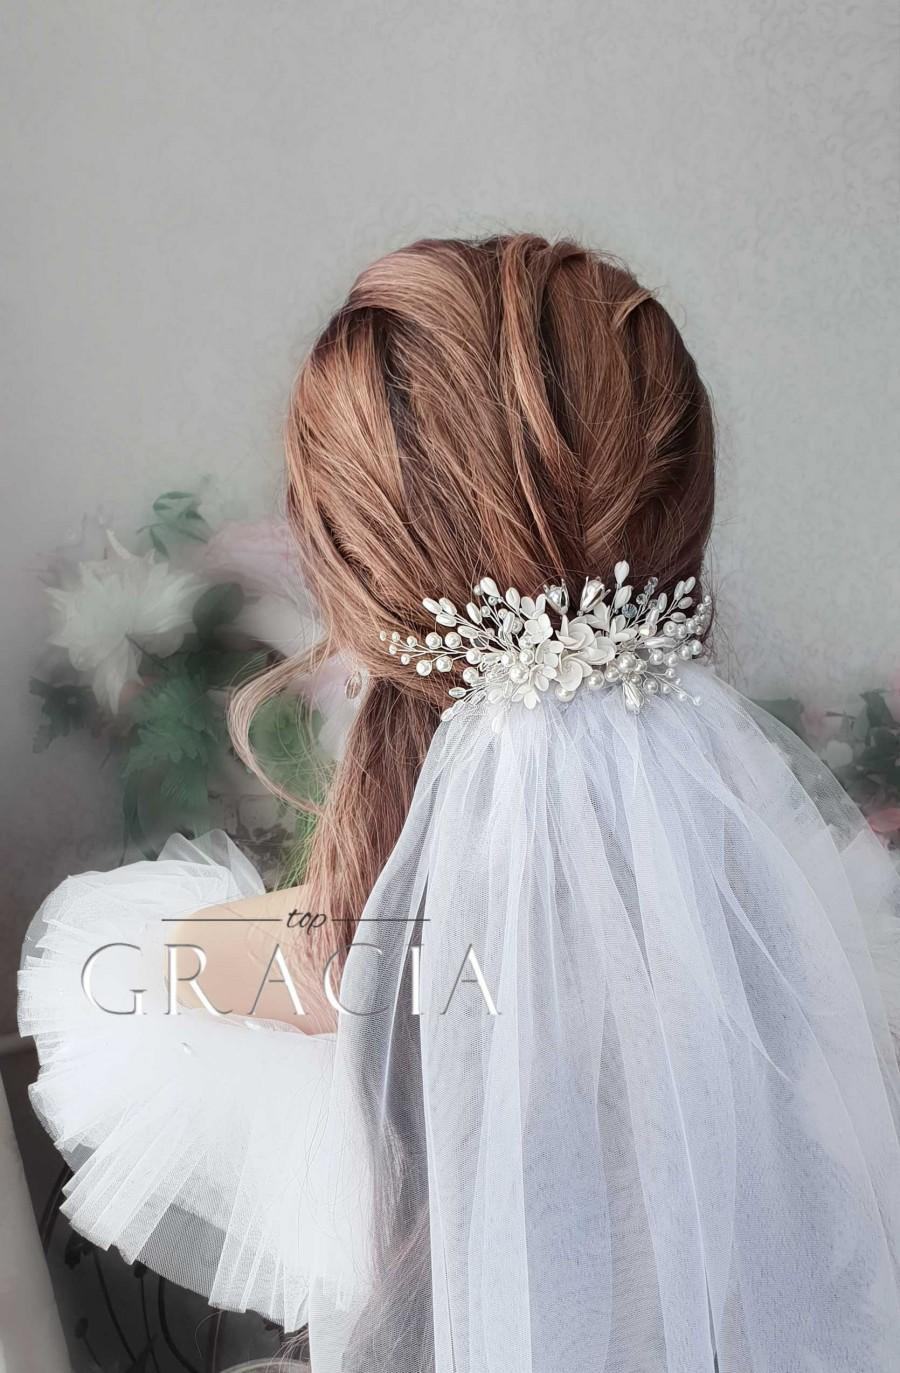 Mariage - Bridal veil comb Wedding veil comb Wedding veil and headpiece Soft Wedding Veil Bridal rose gold veils Pearl hair comb and veil with blusher